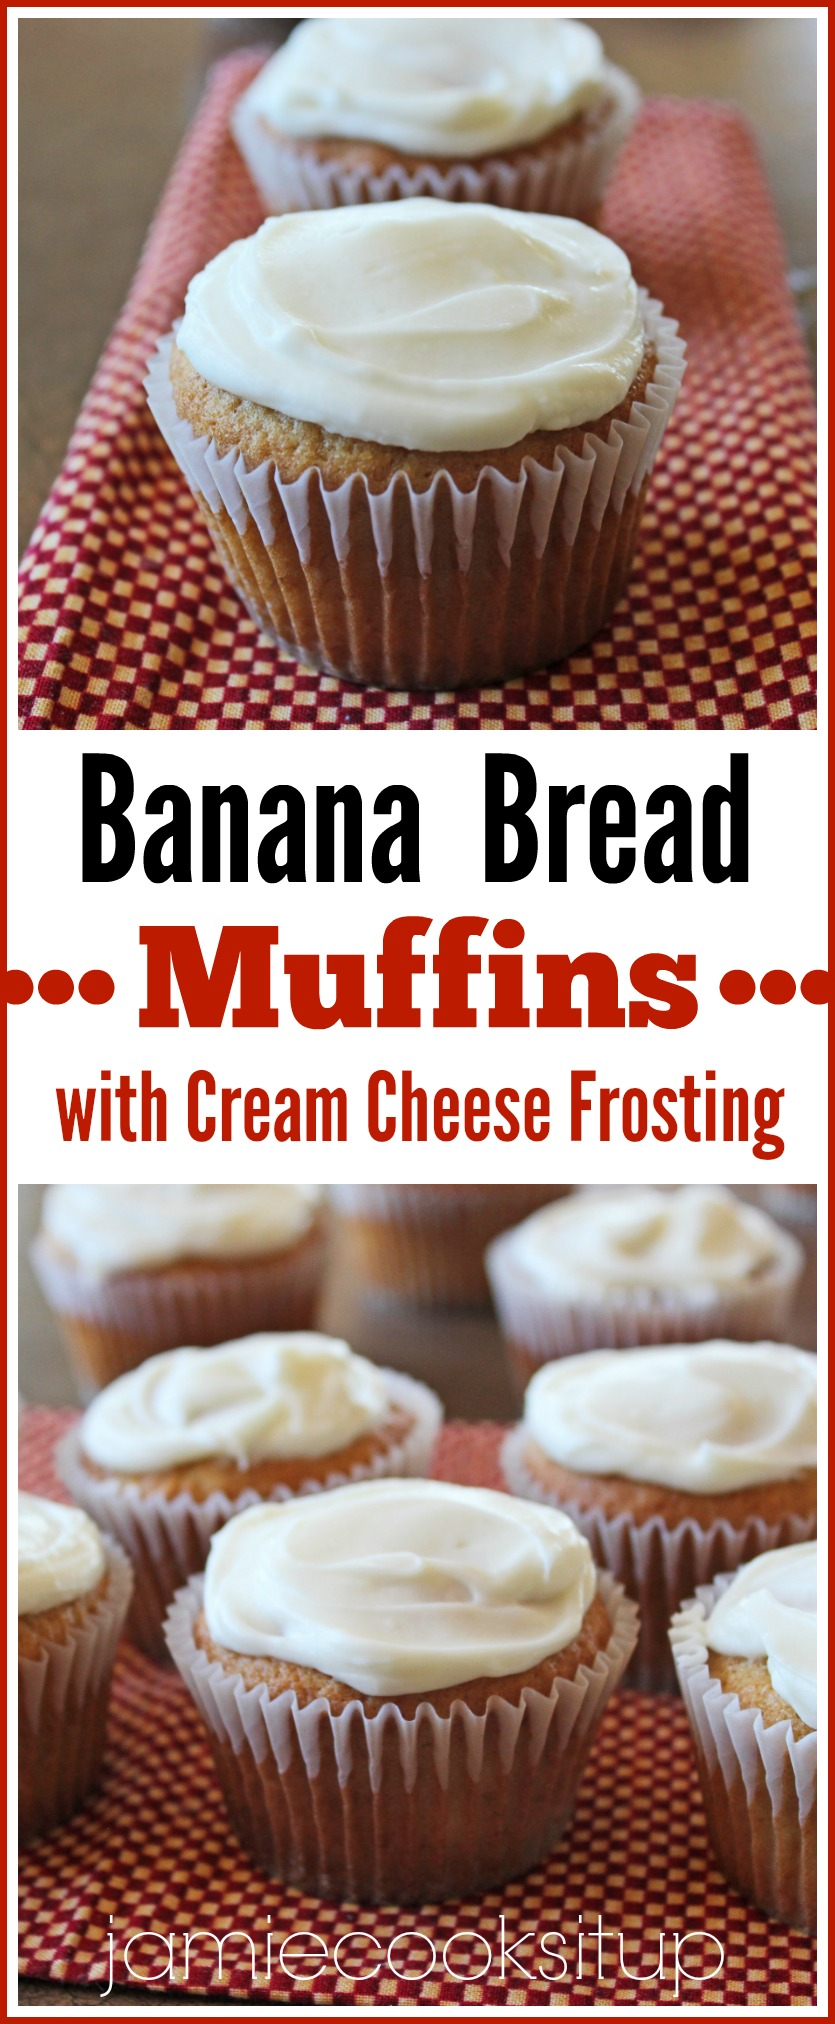 Banana Bread Muffins with Cream Cheese Frosting